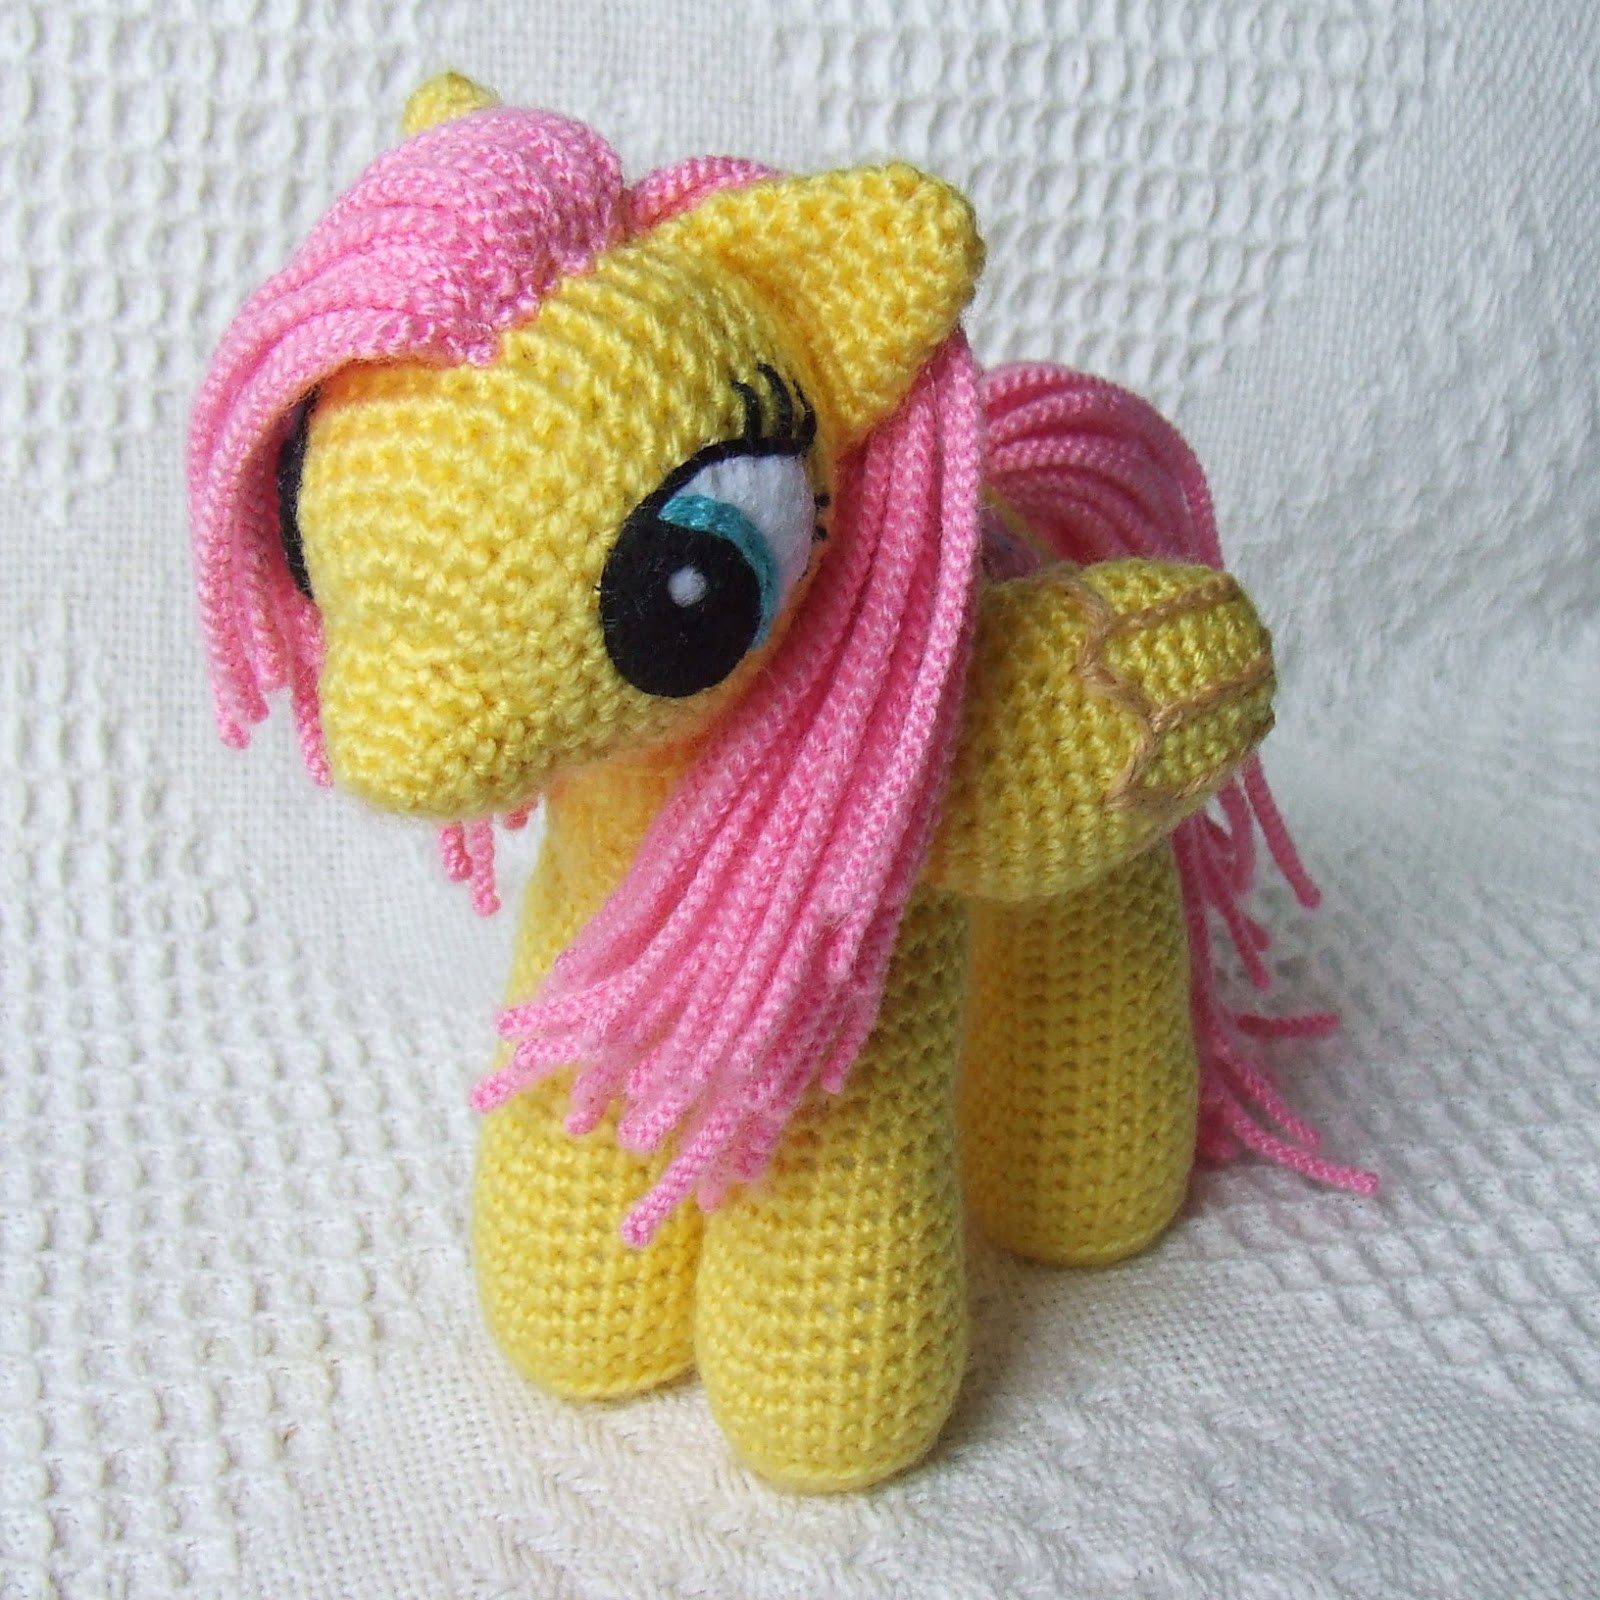 Unique Knit E Awe some My Little Pony Friendship is Magic My Little Pony Crochet Pattern Of Brilliant 49 Ideas My Little Pony Crochet Pattern